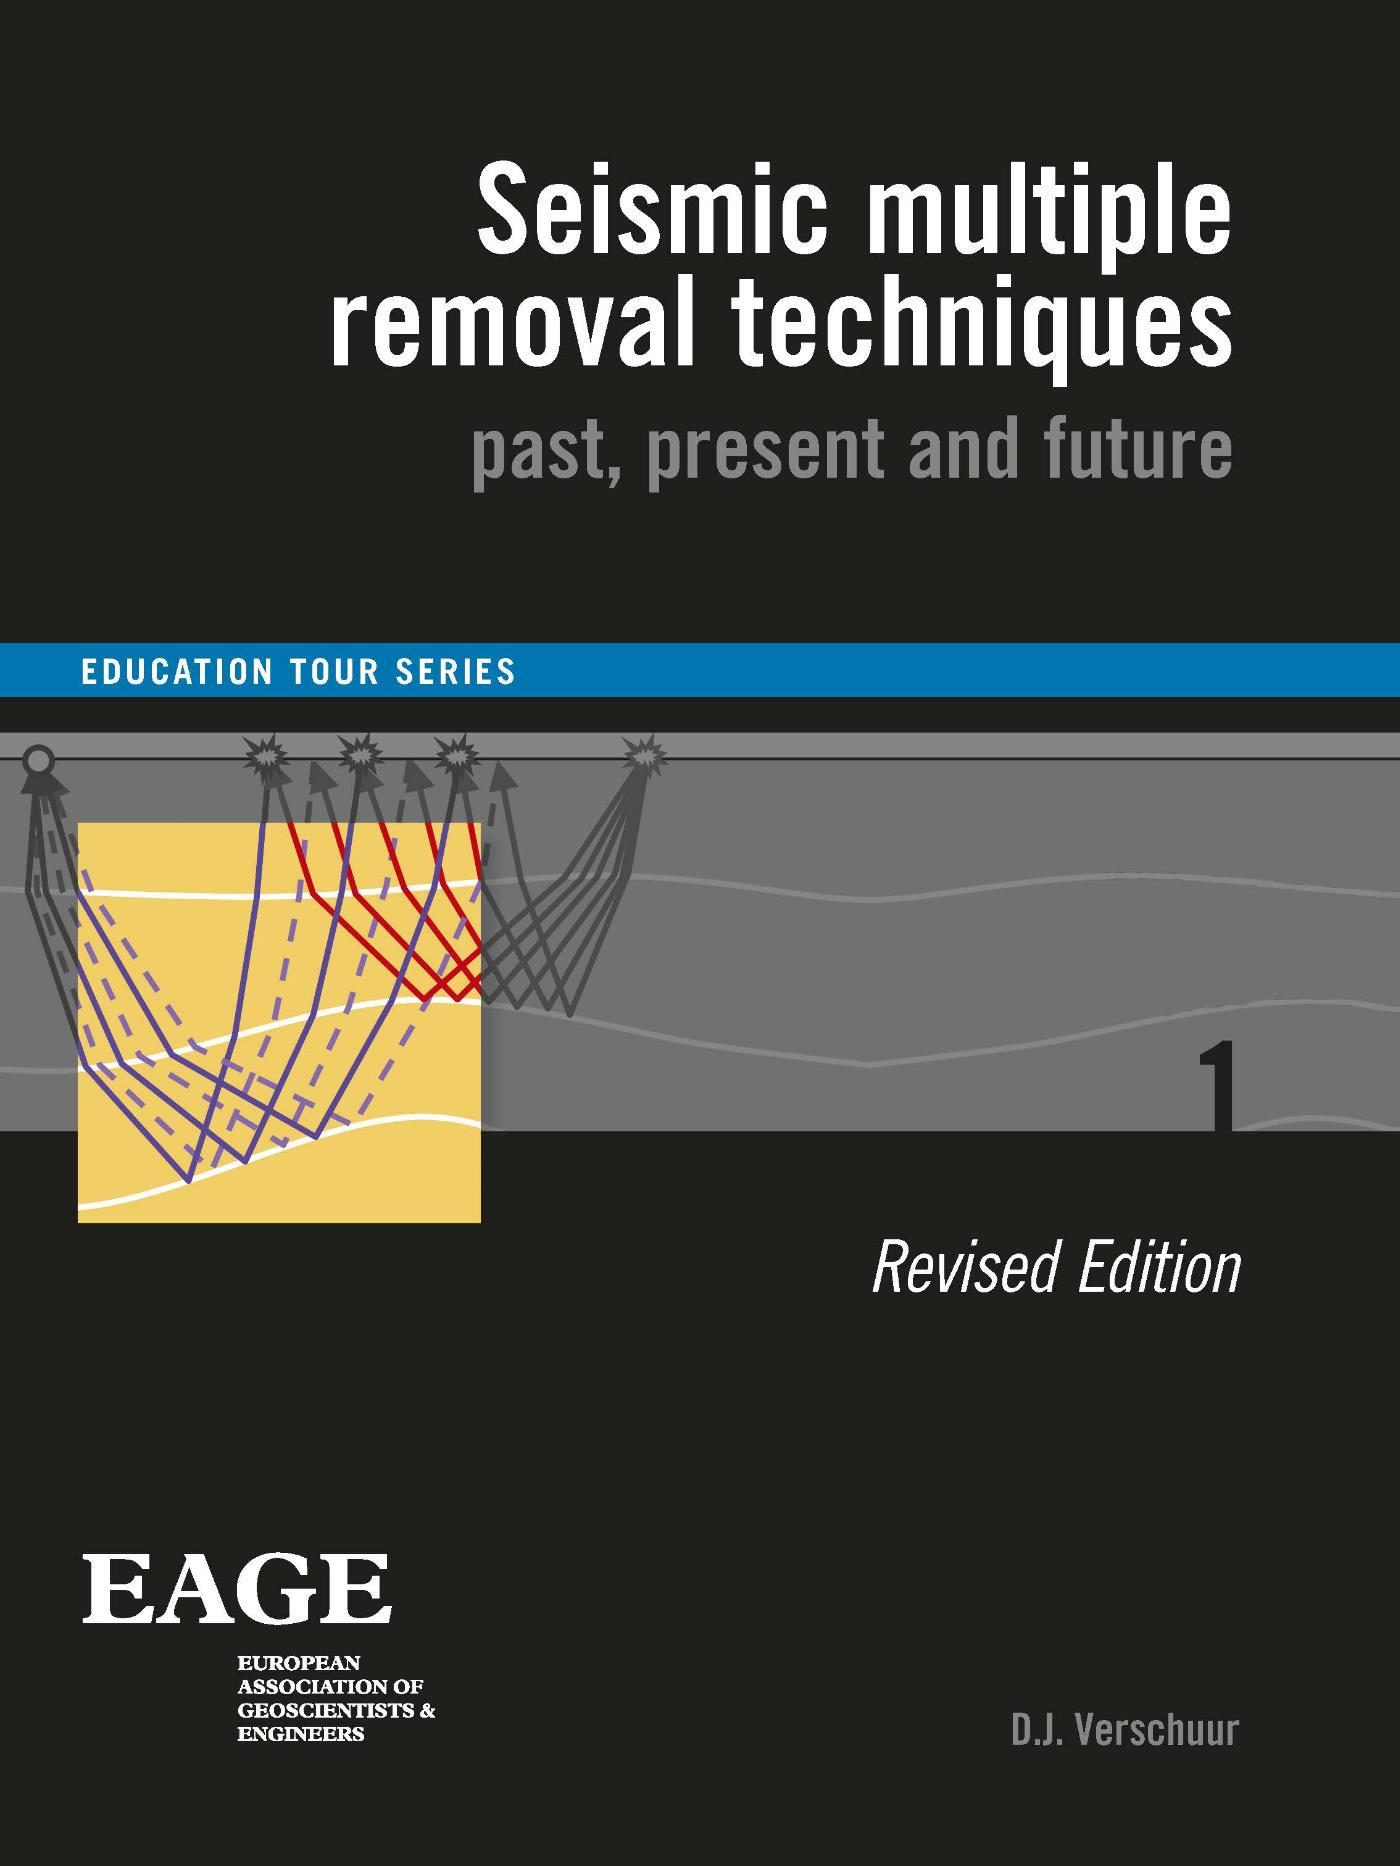 Seismic multiple removal techniques